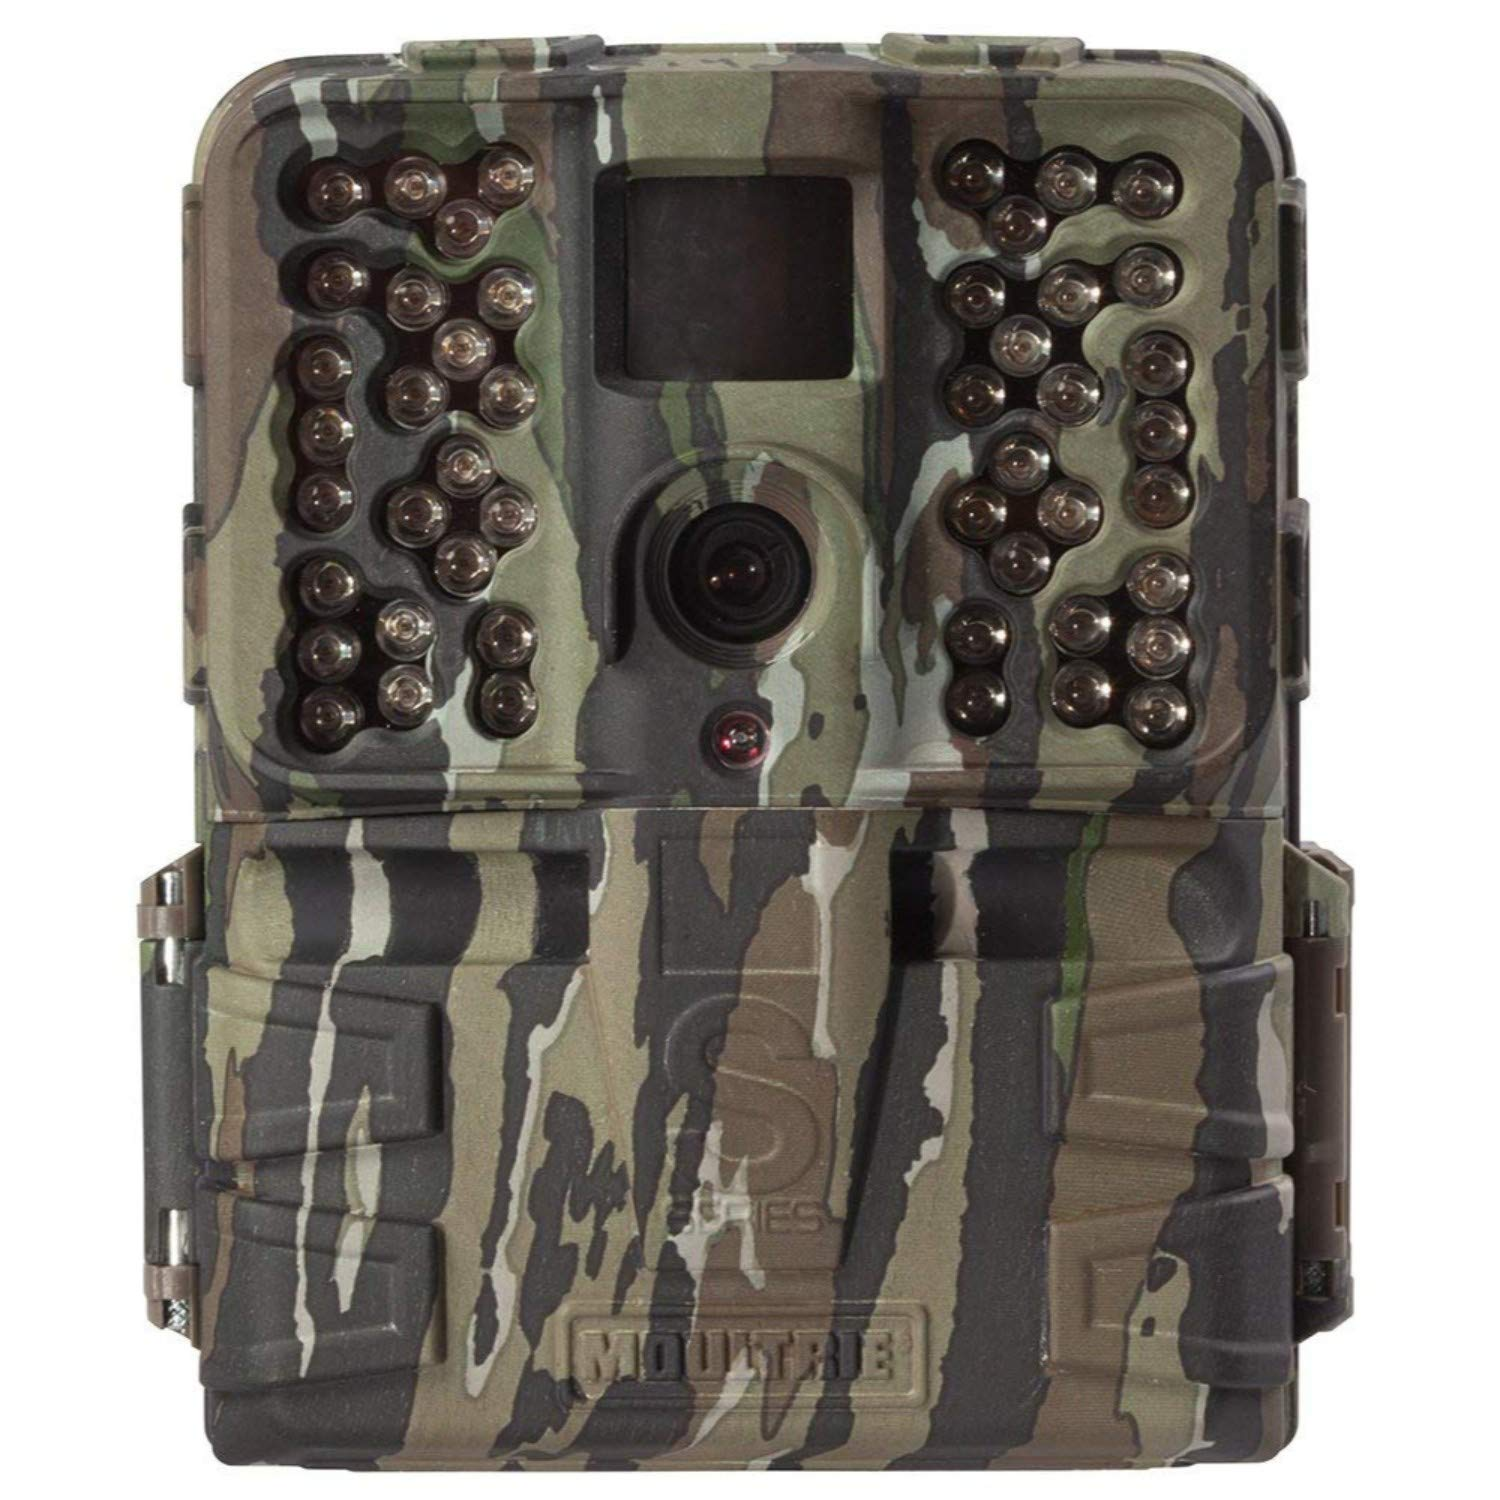 Moultrie S-50i Game Camera (2017) | All Purpose Series | 20 MP | 0.3 S Trigger Speed | 1080P Video | Moultrie Mobile Compatible by Moultrie